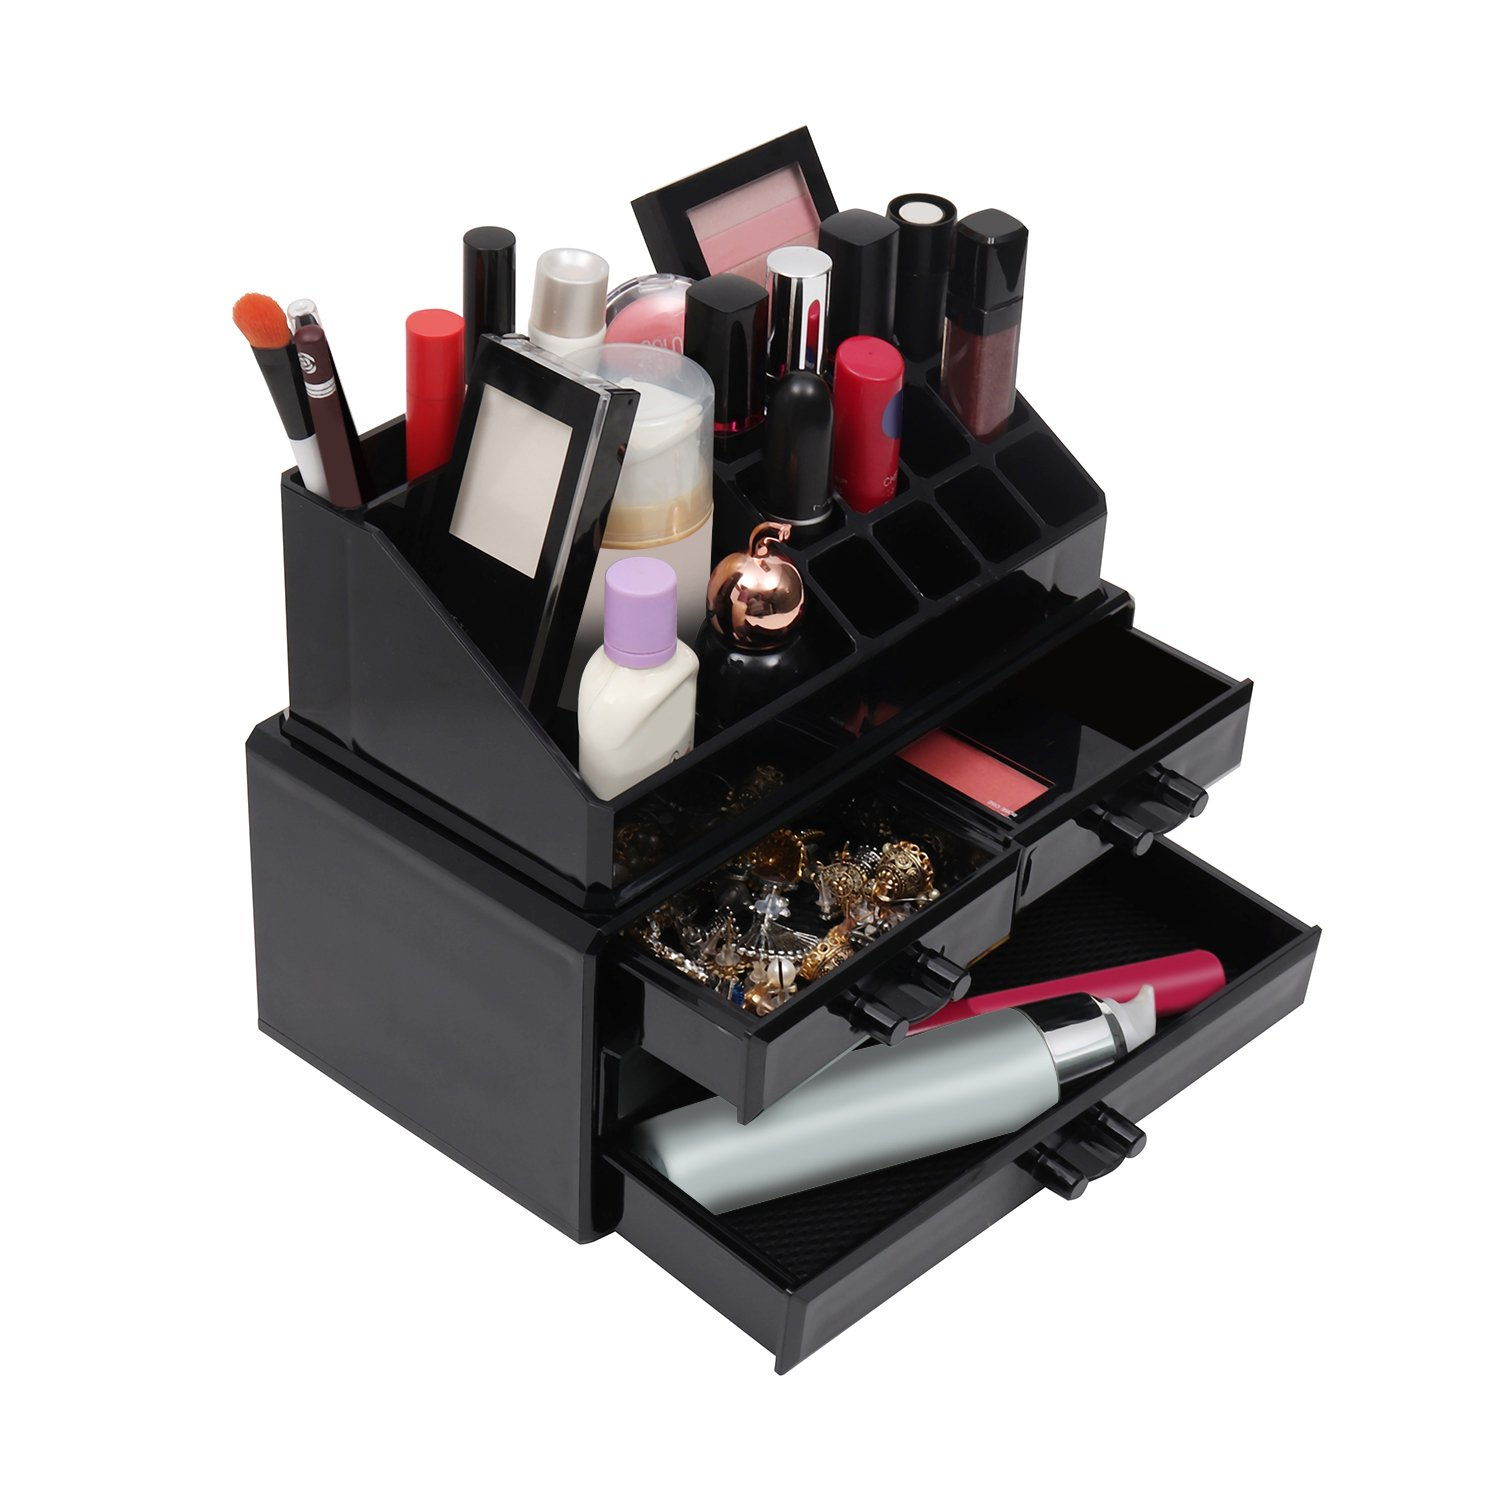 Kurtzy Makeup Organiser Storage Box - Clear Black Acrylic Jewellery Storage Box with 20 sections - 16 Cosmetic Holder and 4 drawers by Perfect for Eyeshadow, Brushes, Lipstick, Nail Varnish & More JT-1513